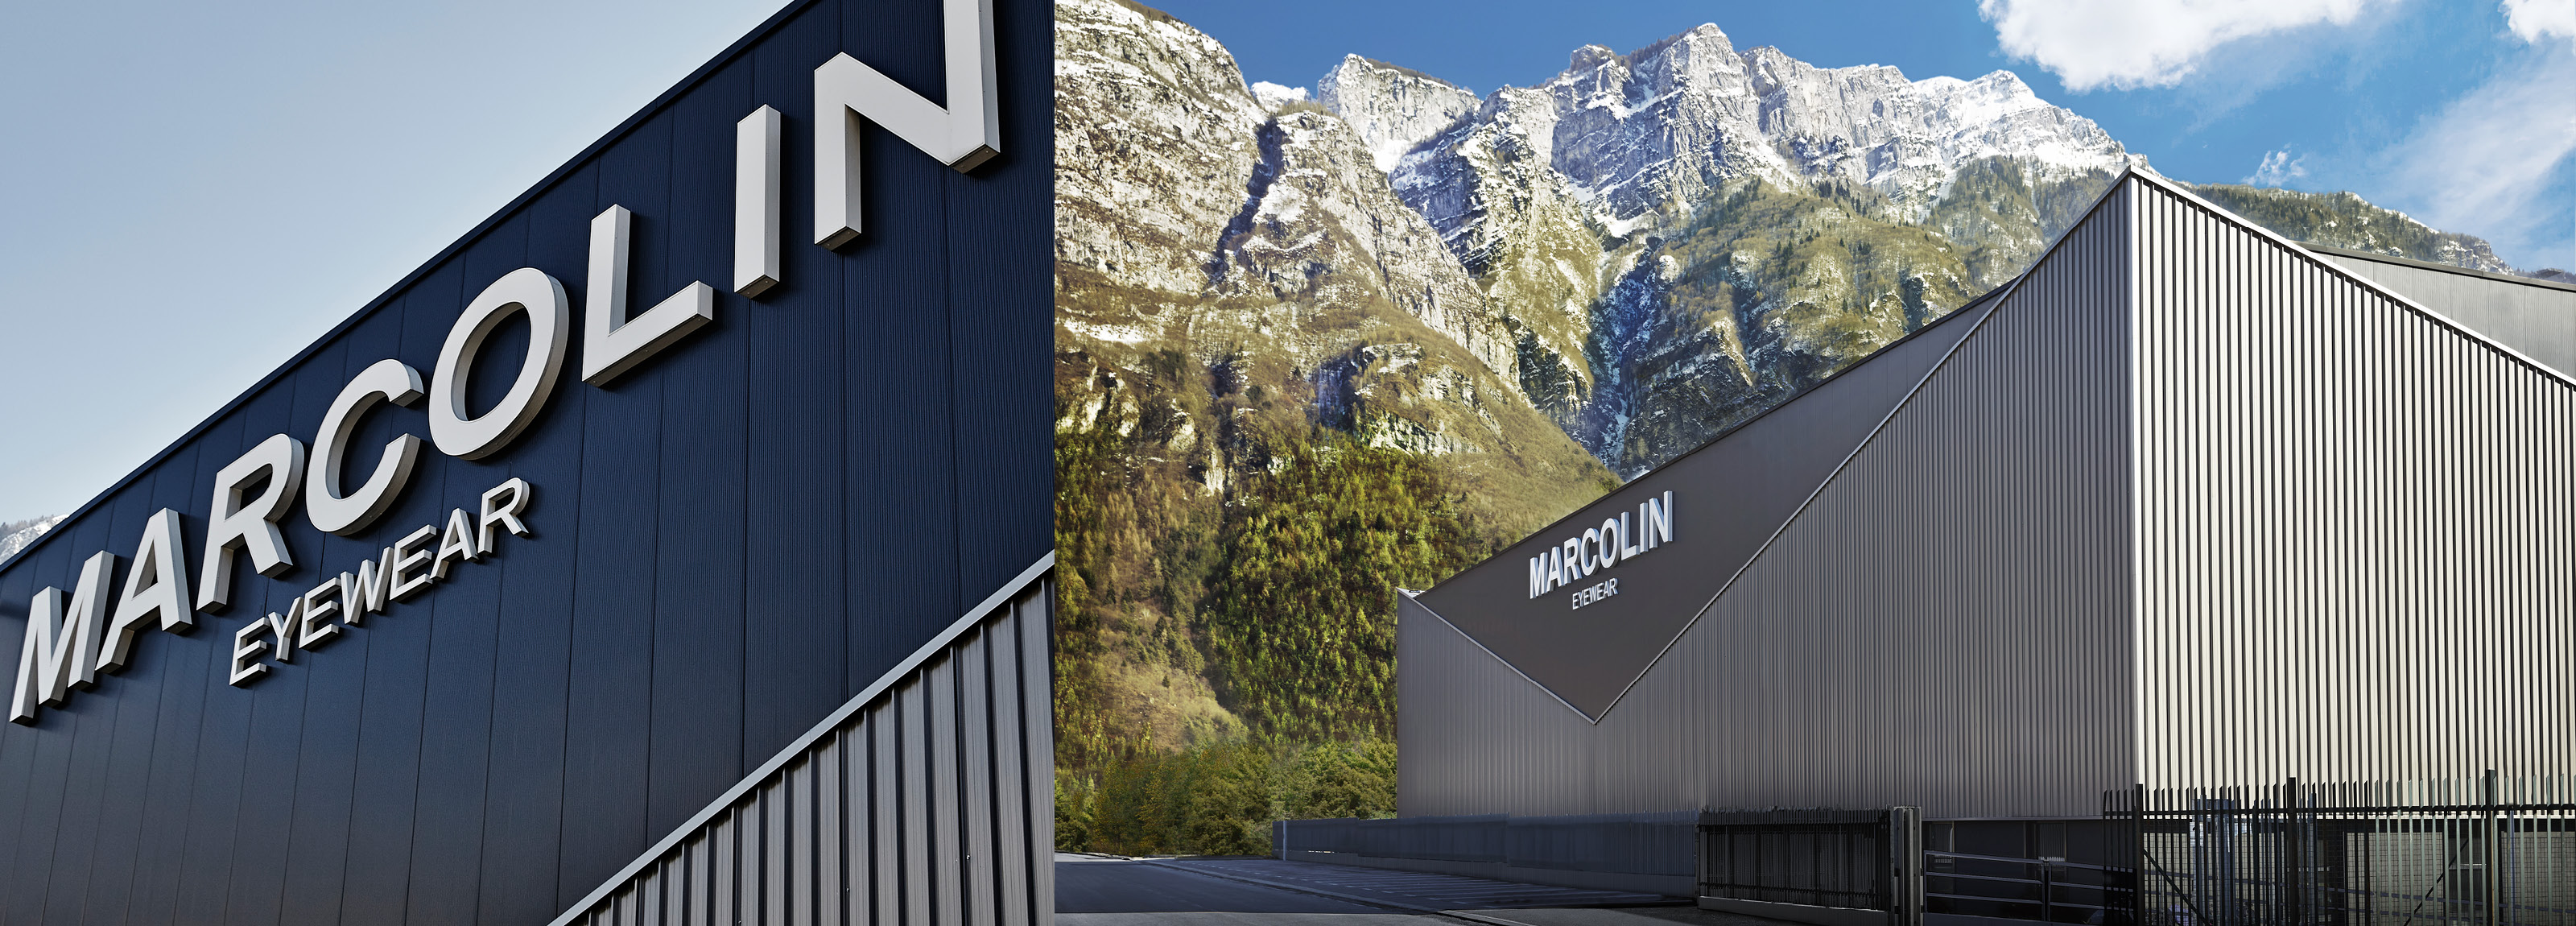 Architectural project of Hangar Design Group for the facade and the external of the Marcolin headquarter, based in Longarone.